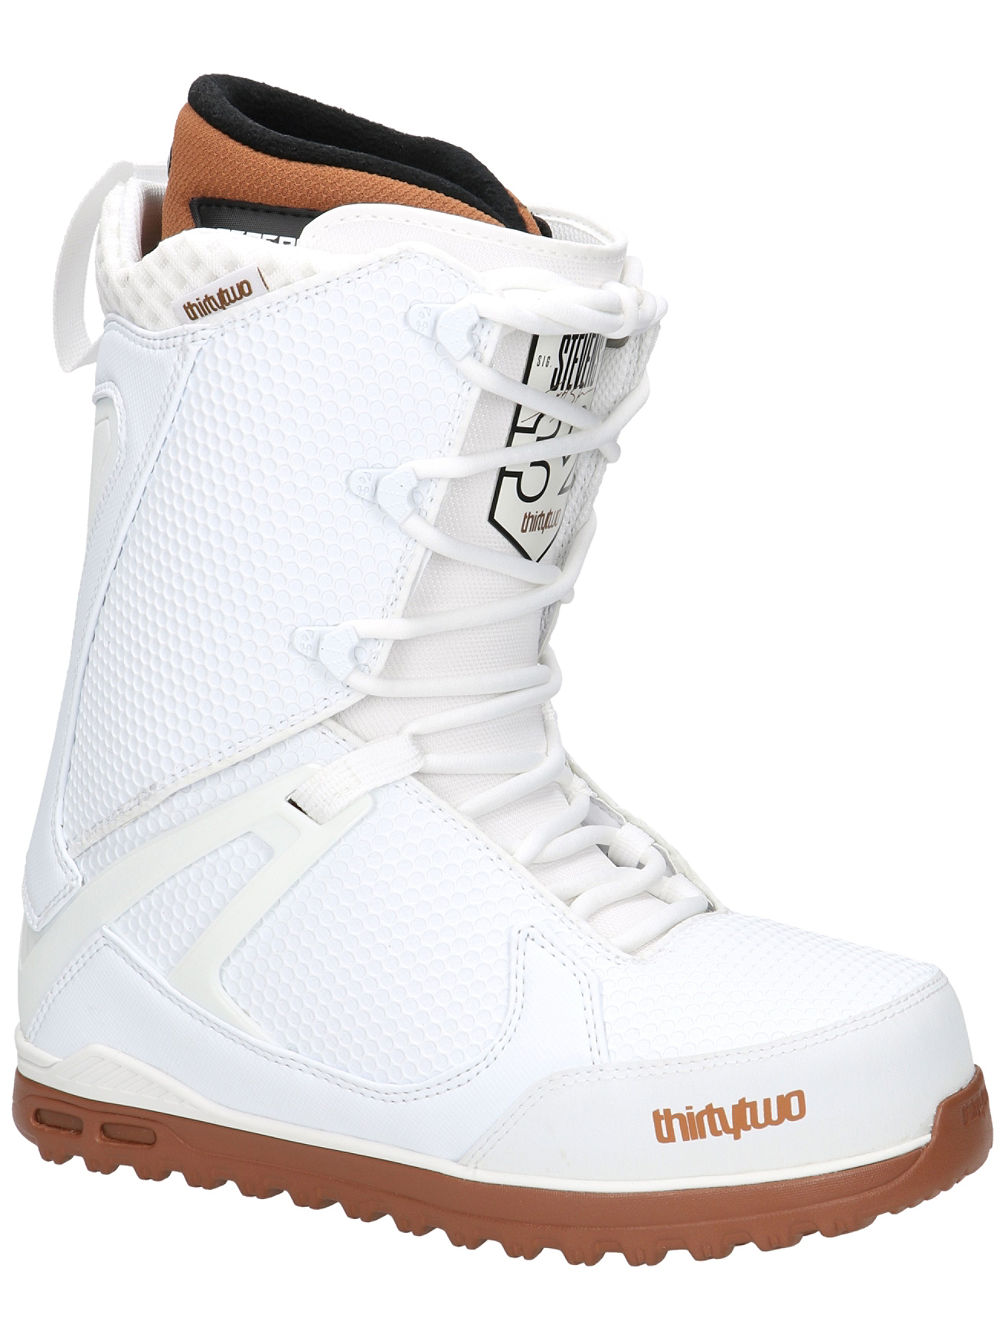 Tm-Two Stevens 2018 Snowboardboots